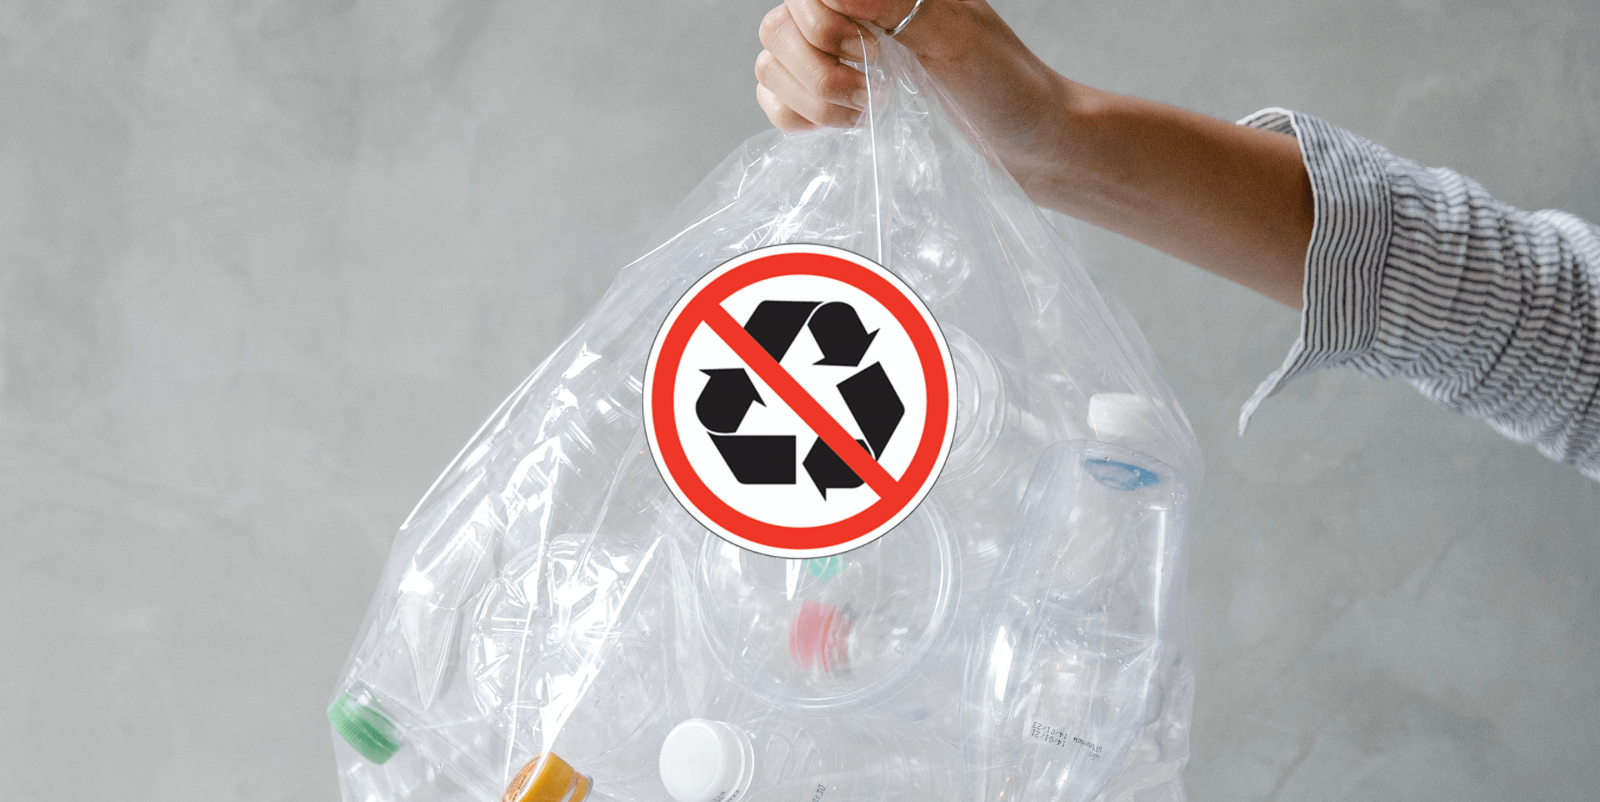 things you should never recycle